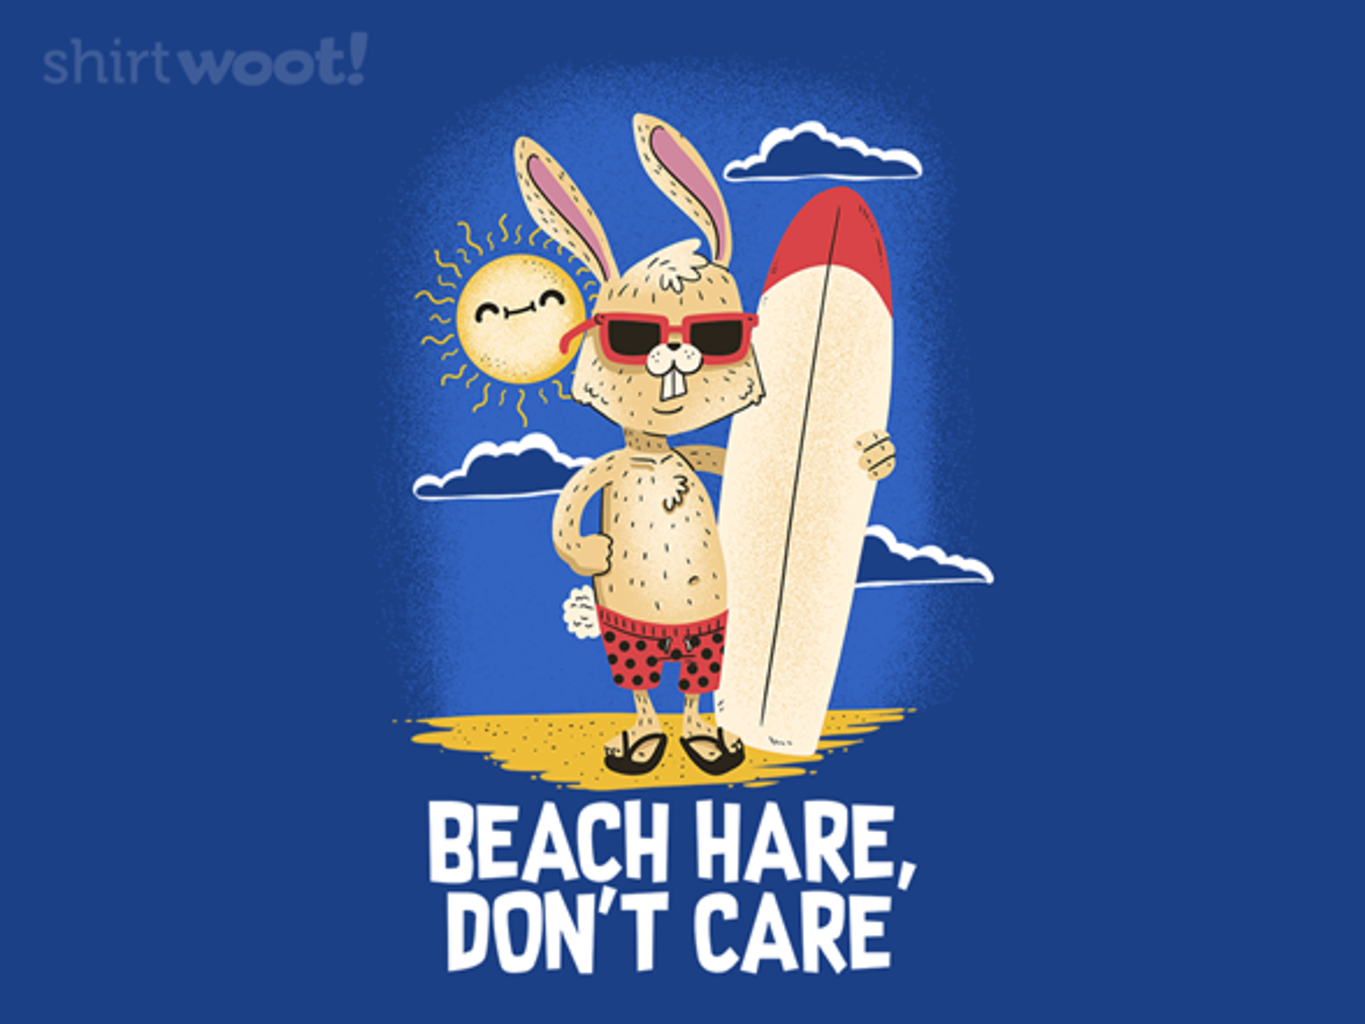 Woot!: Beach Hare, Don't Care - $15.00 + Free shipping